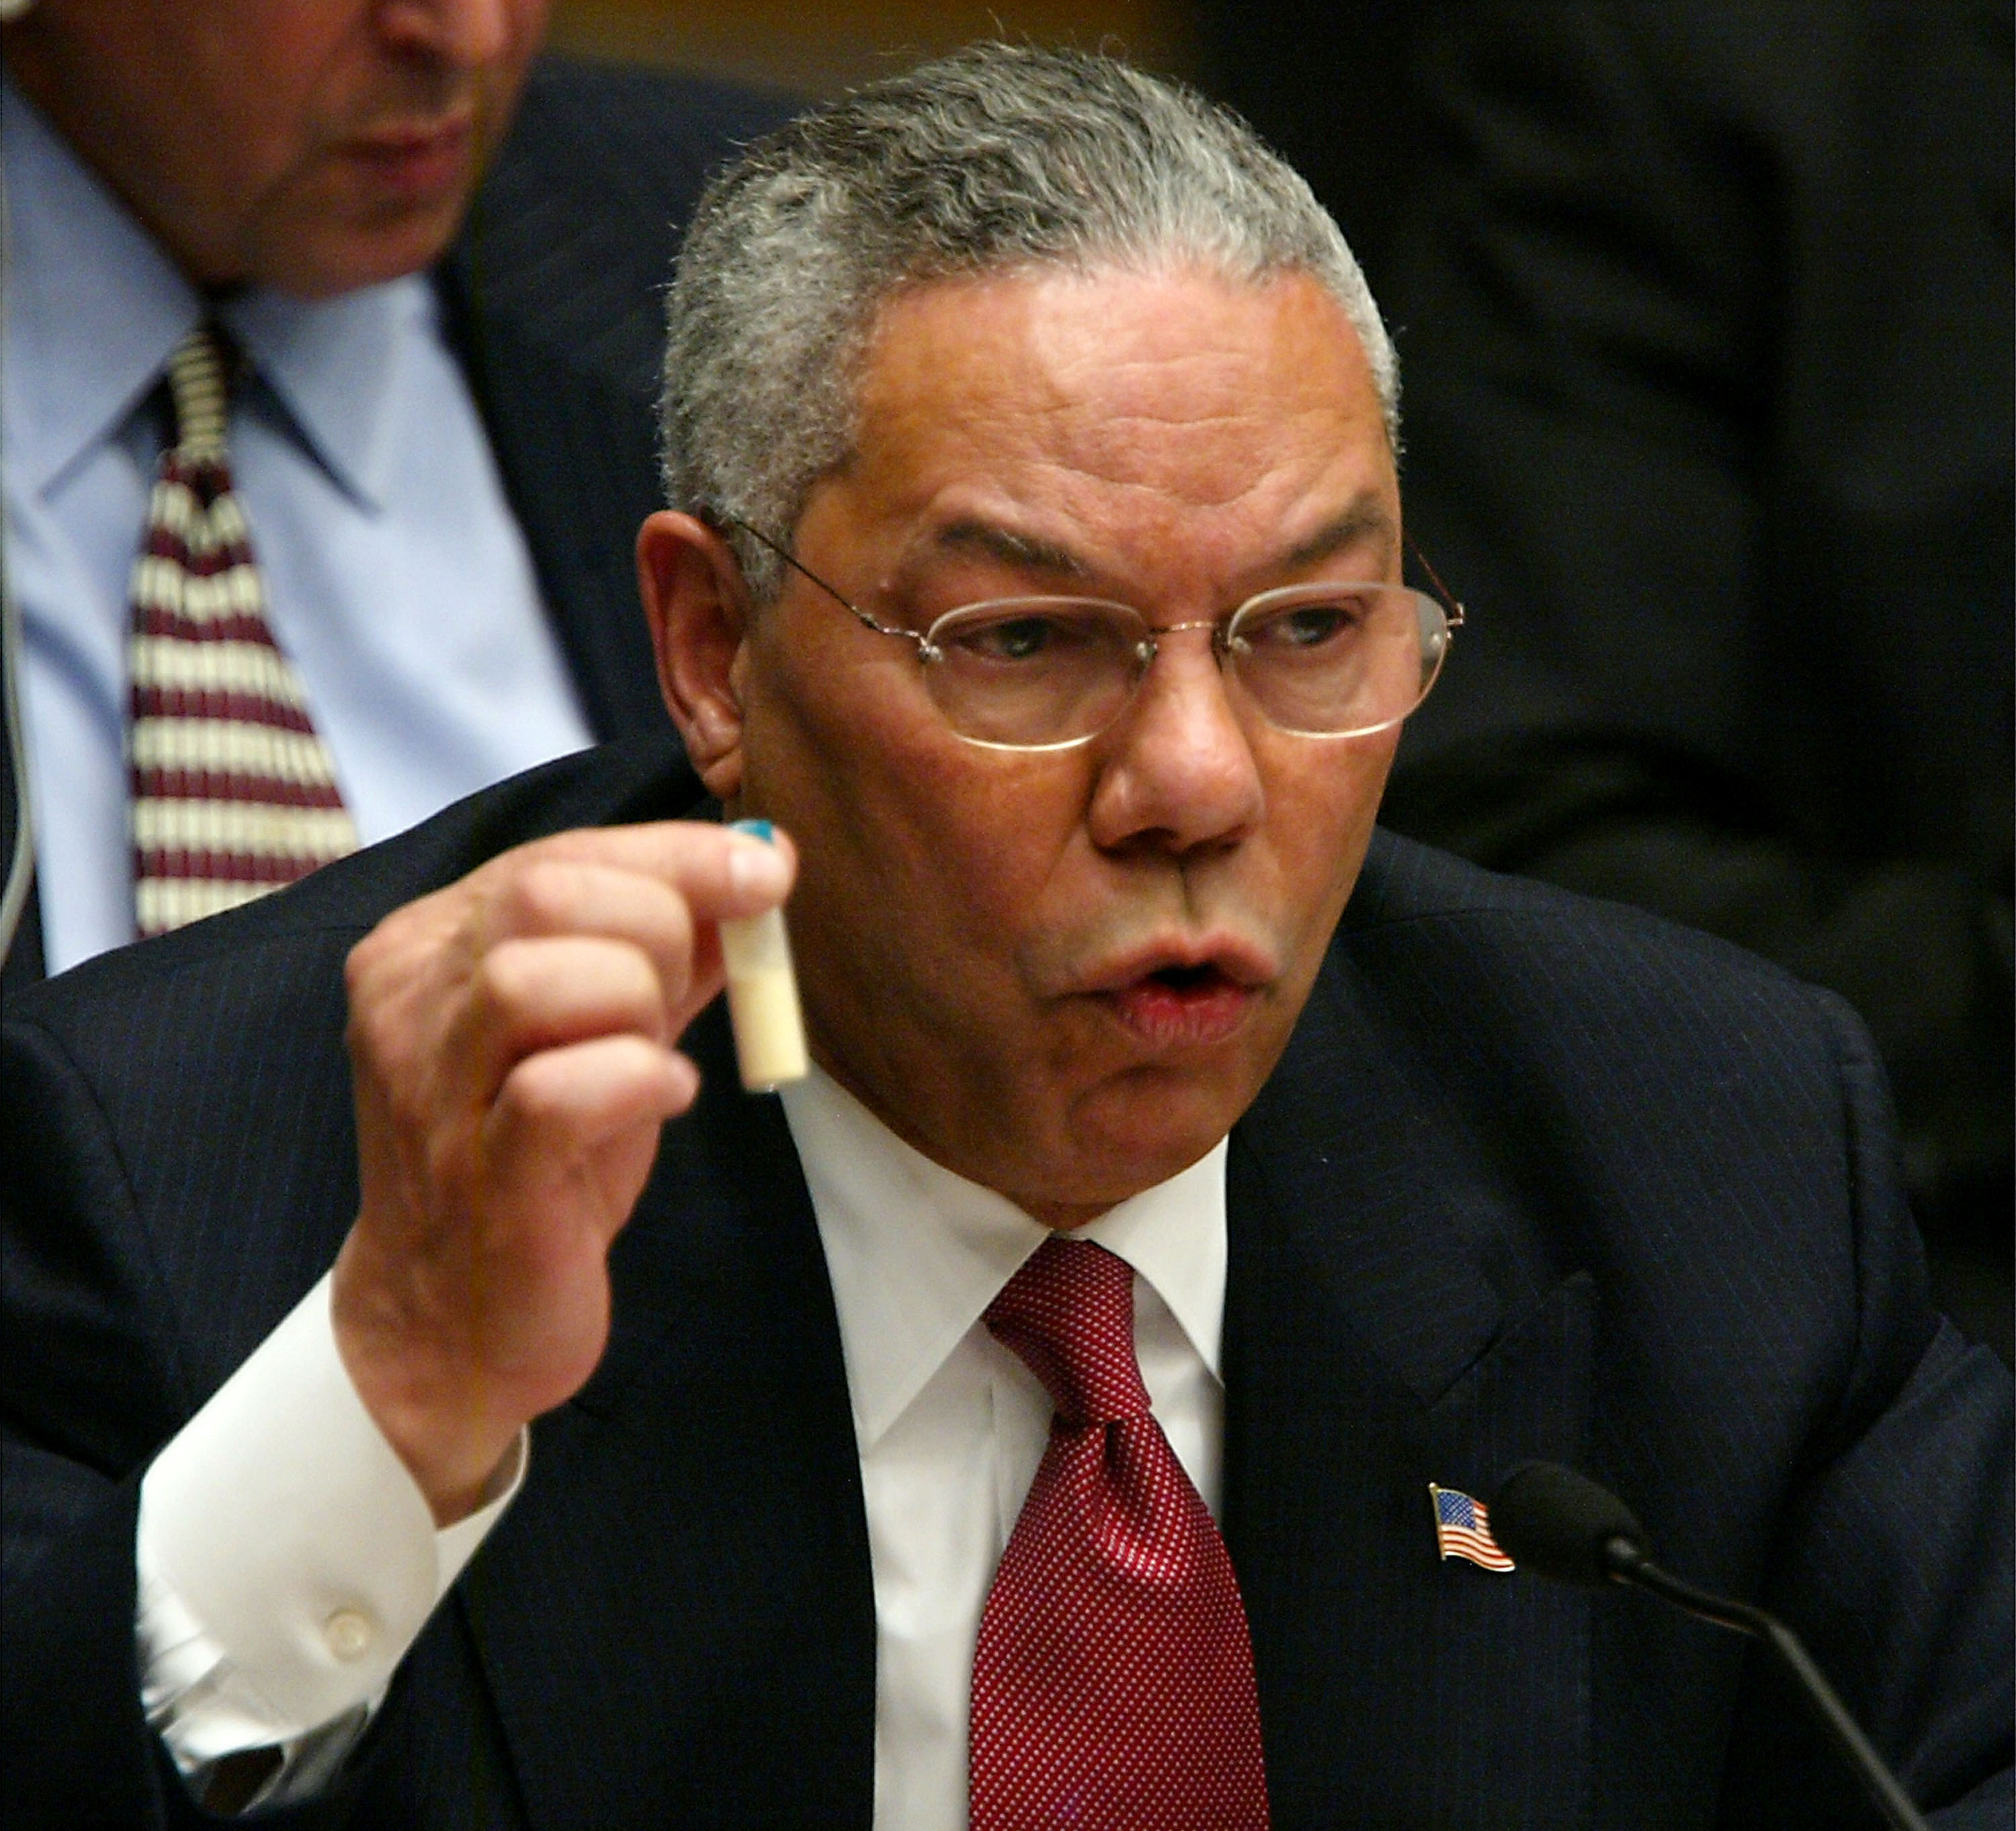 Sec. of State Powell holds a viral of anthrax while telling the UN that Iraq is hiding WMD. Feb 5, 2003.